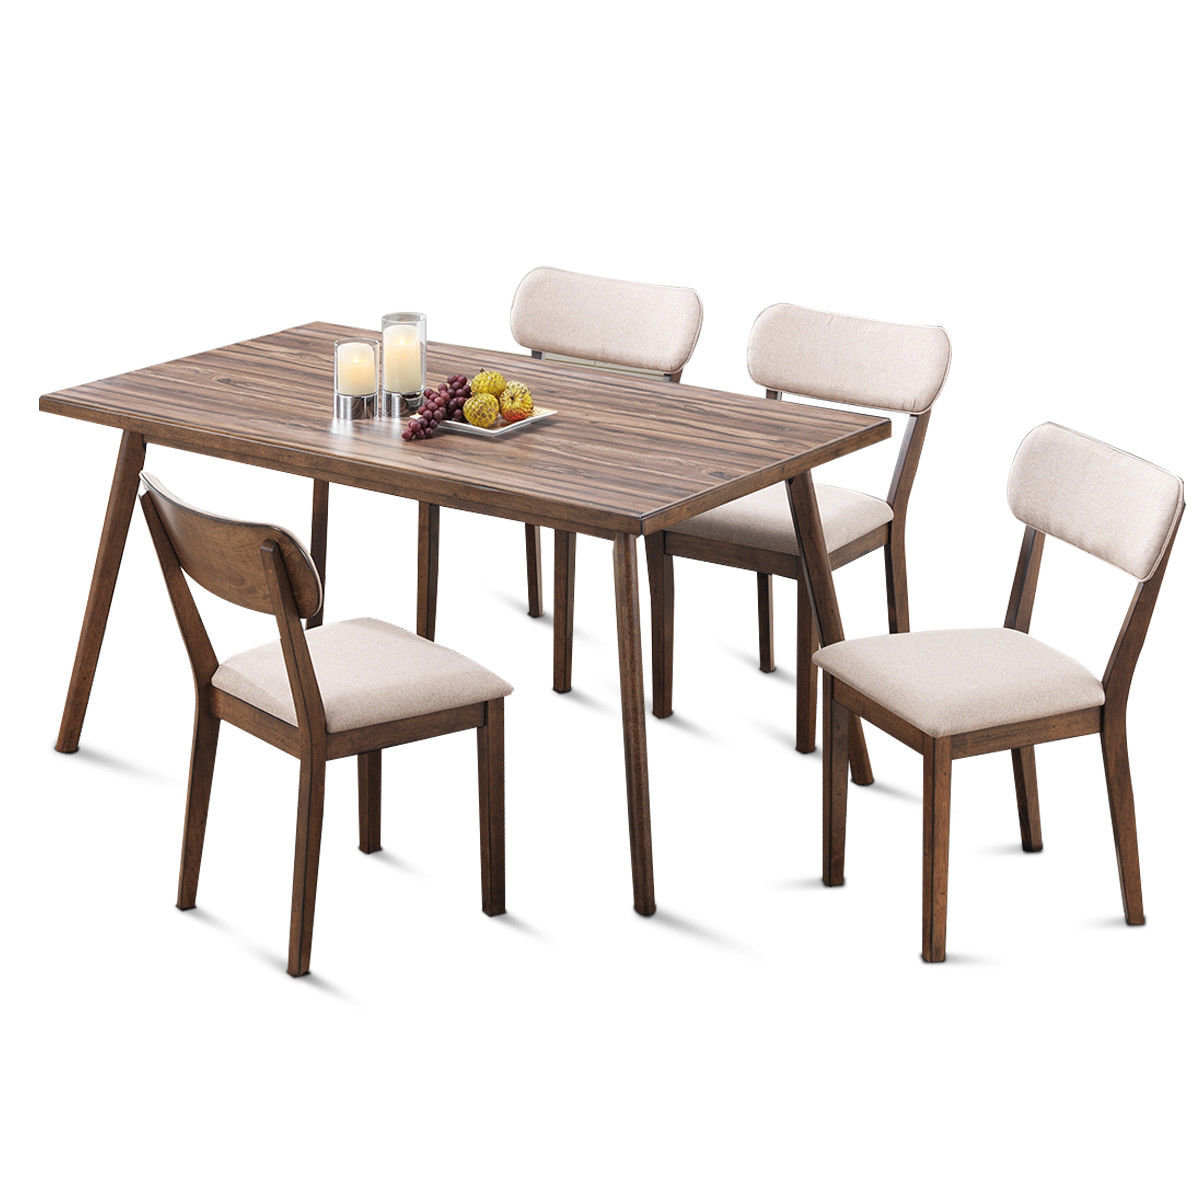 Wiggs 5 Piece Dining Sets Throughout Well Known George Oliver Eatmon 5 Piece Dining Set (View 11 of 25)